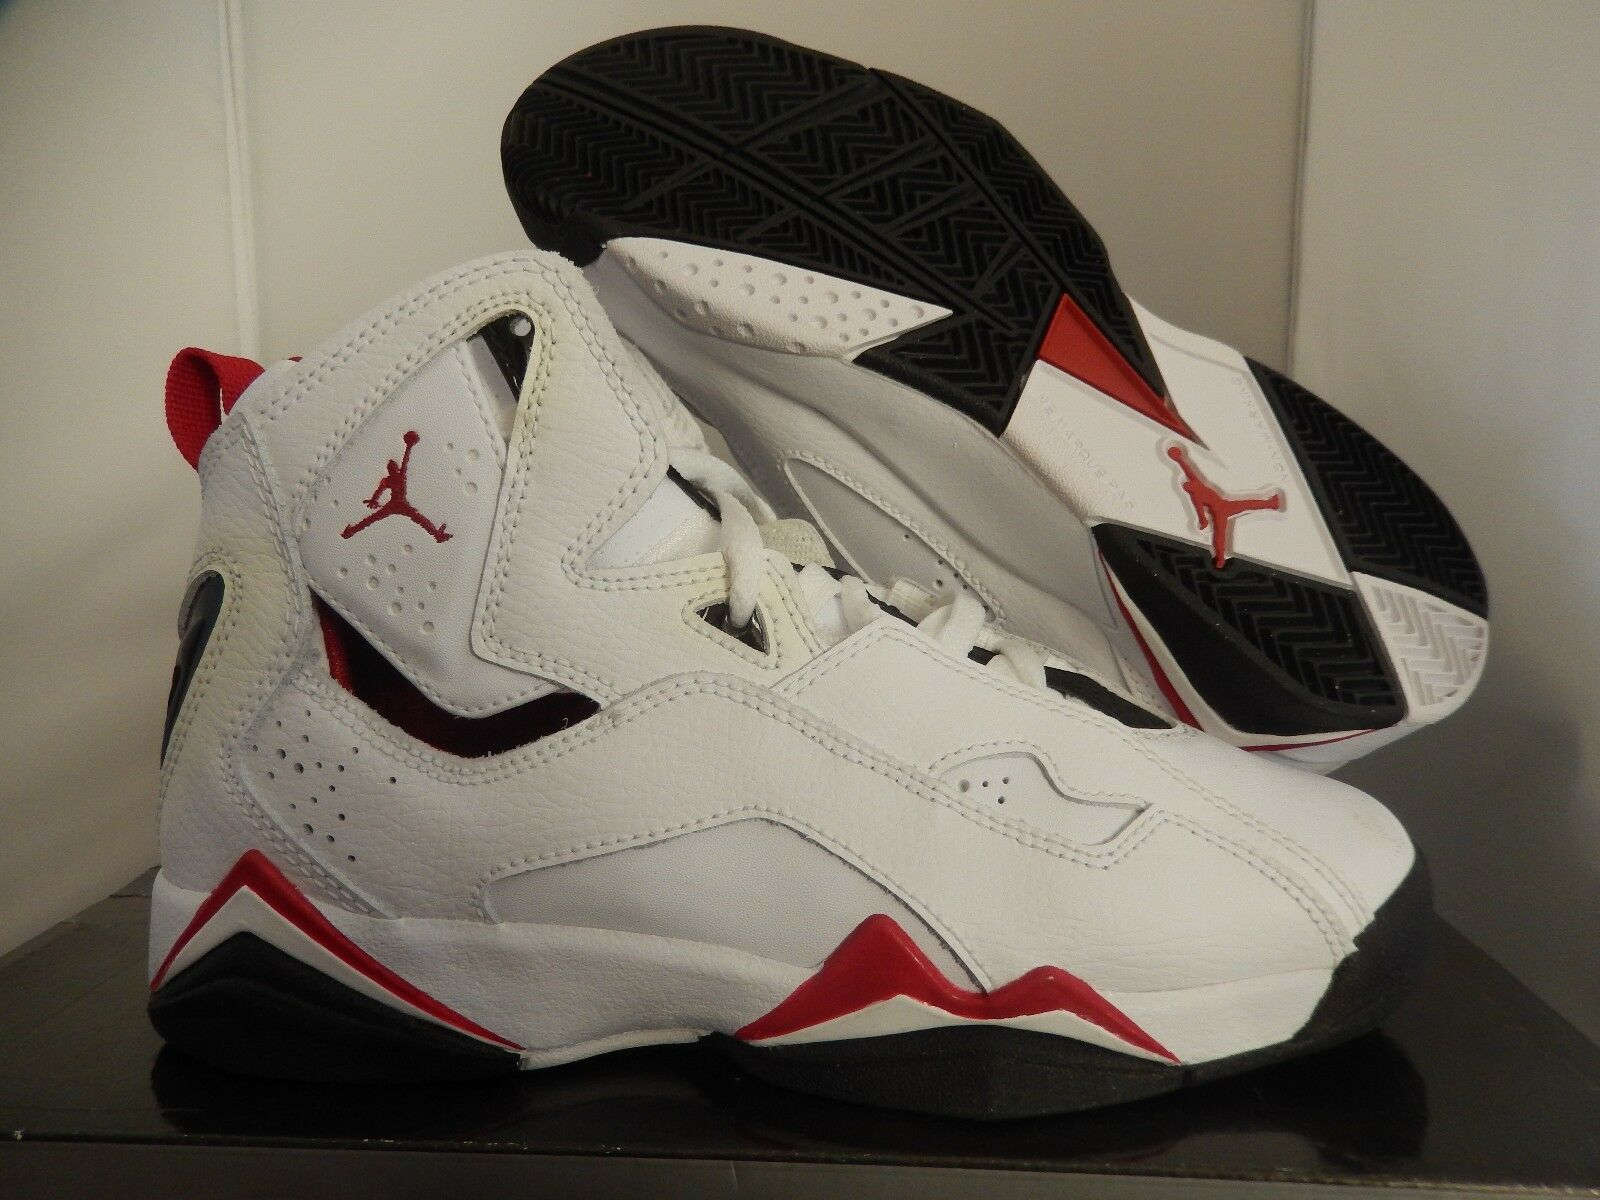 NIKE JORDAN TRUE FLIGHT WHITE-VARSITY RED-BLK SZ 5Y -WOMENS SZ 6.5 [343795-161]